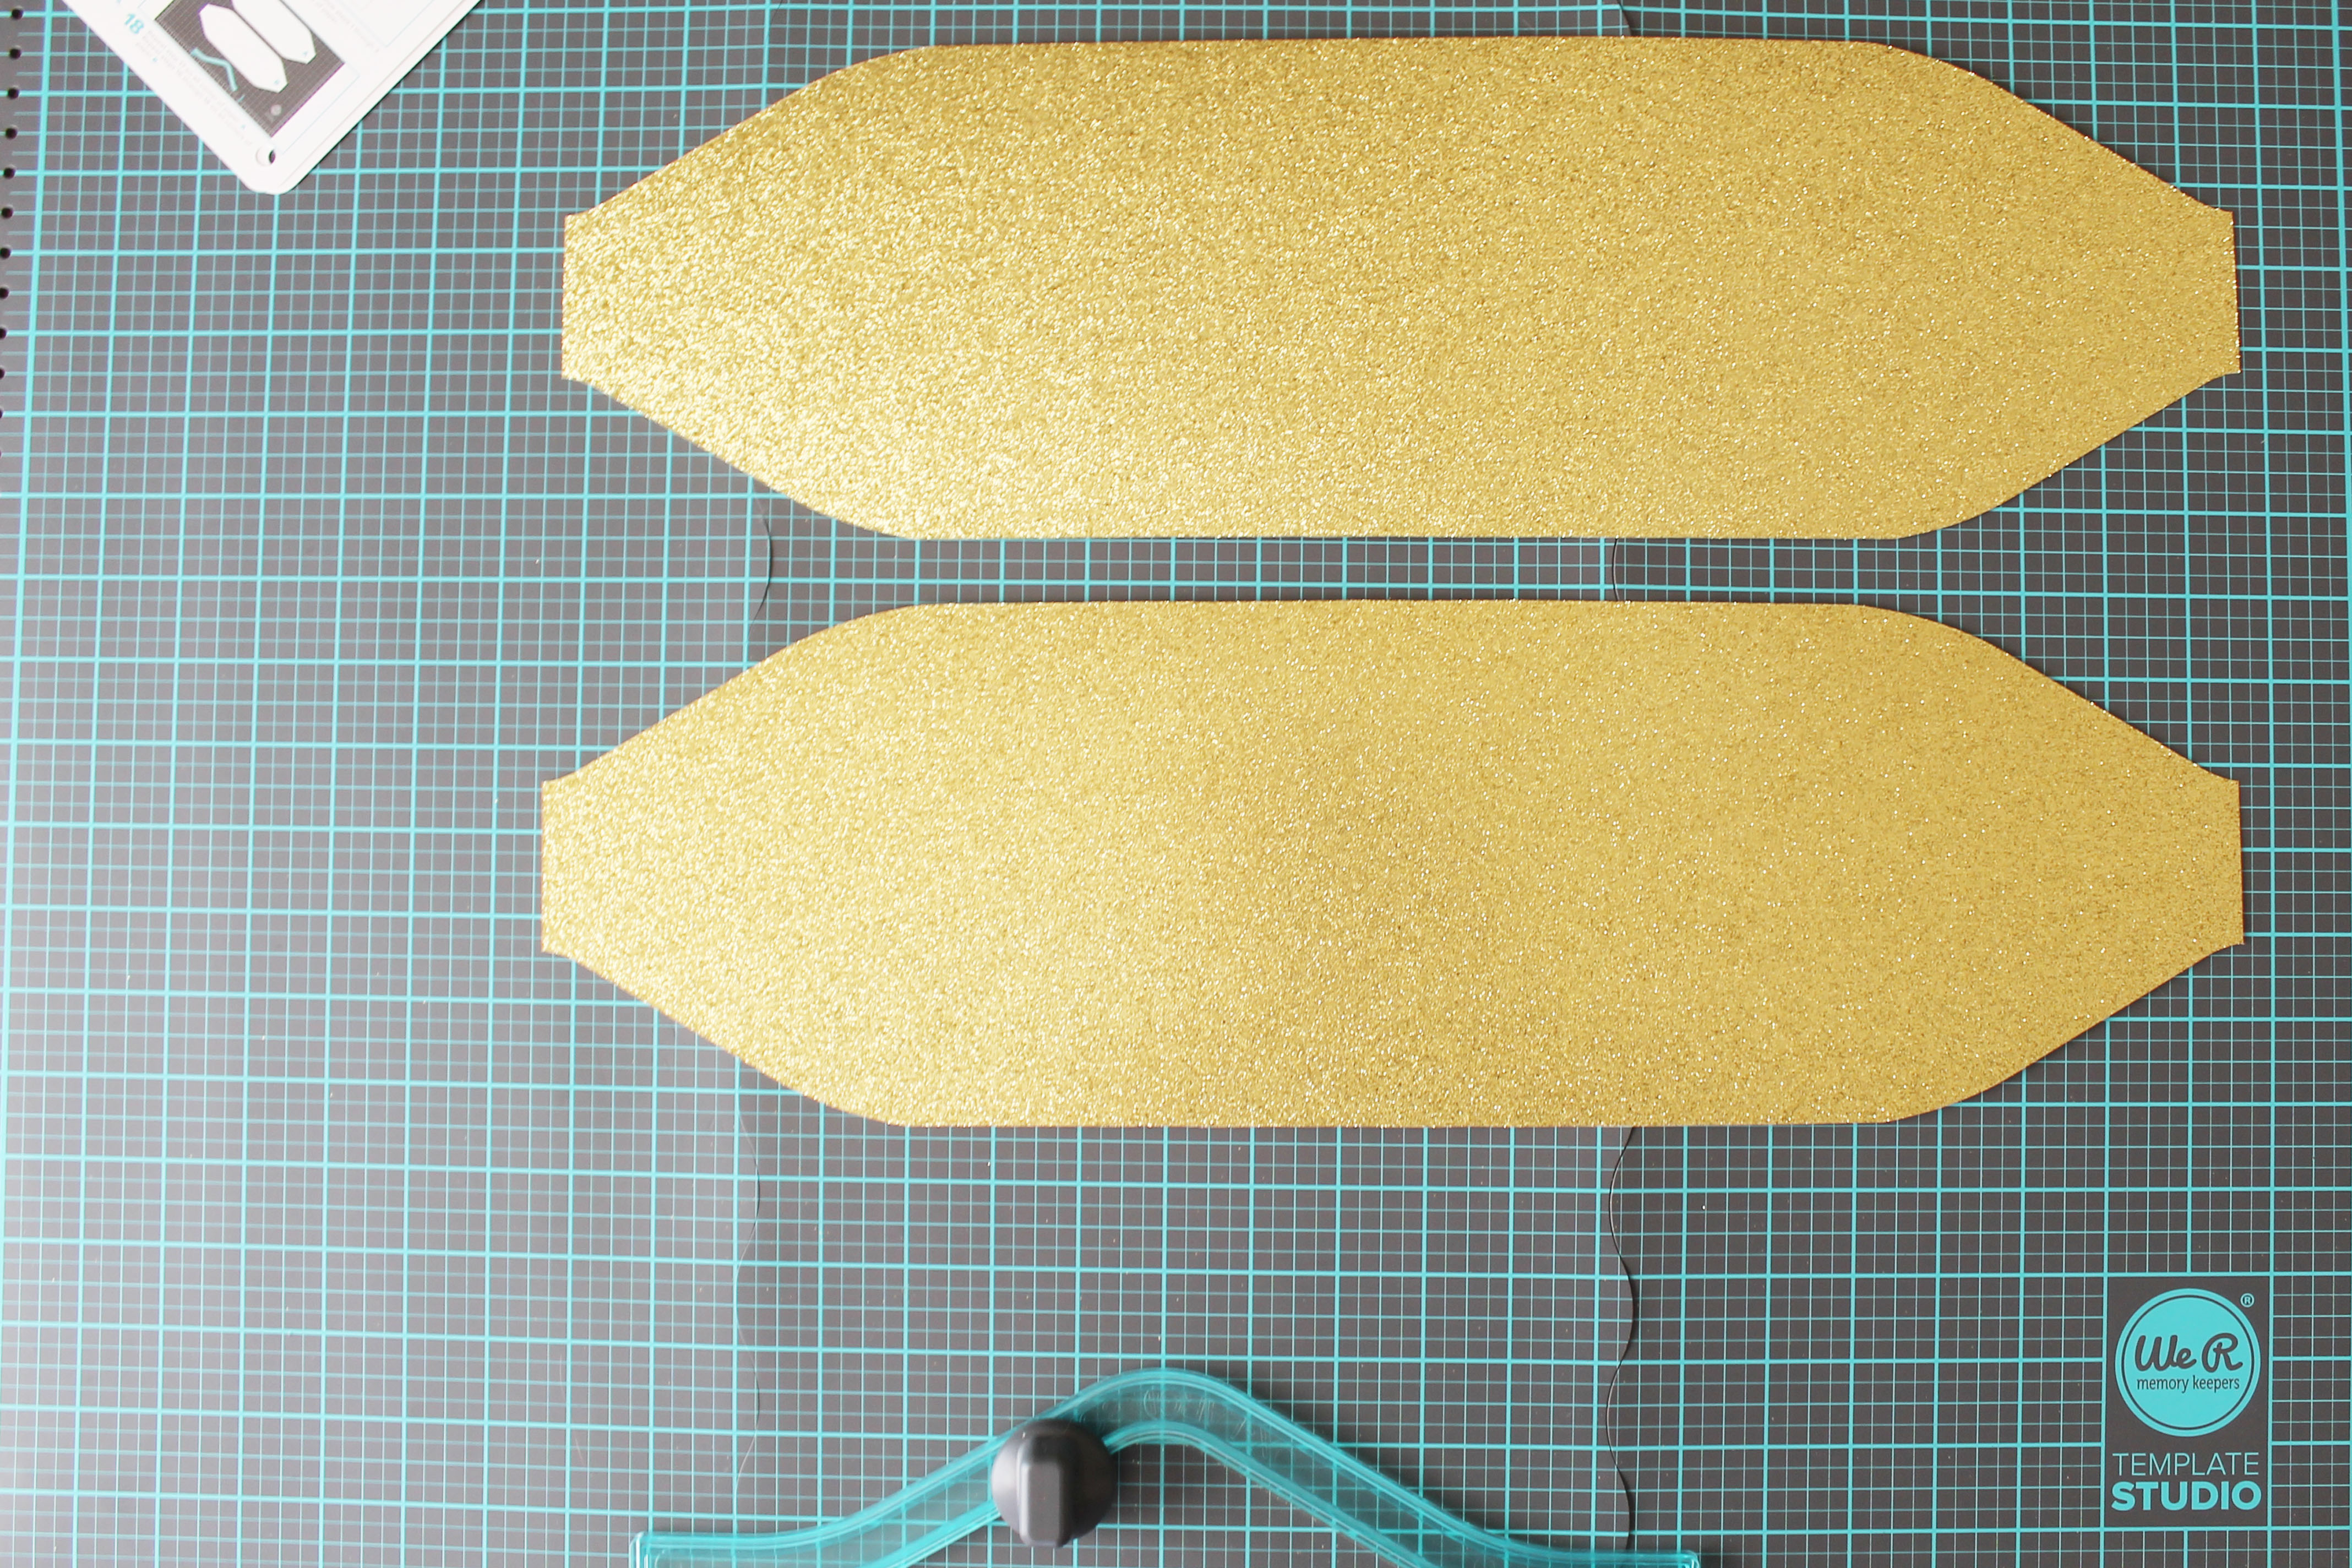 Template Studio Bow Guide Party Decor by Laura Silva 3